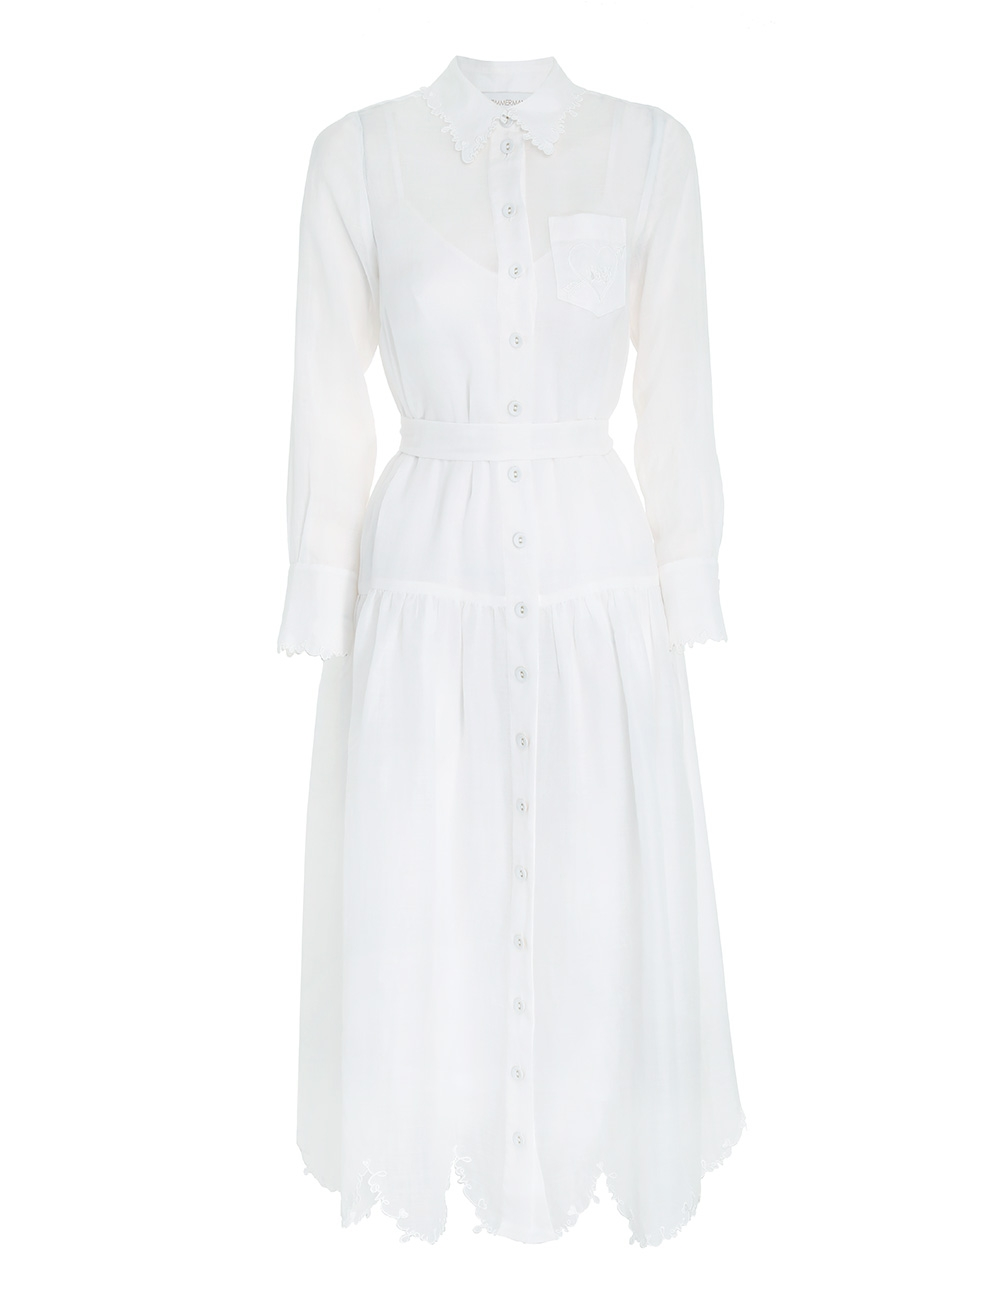 The Lovestruck Shirt Dress